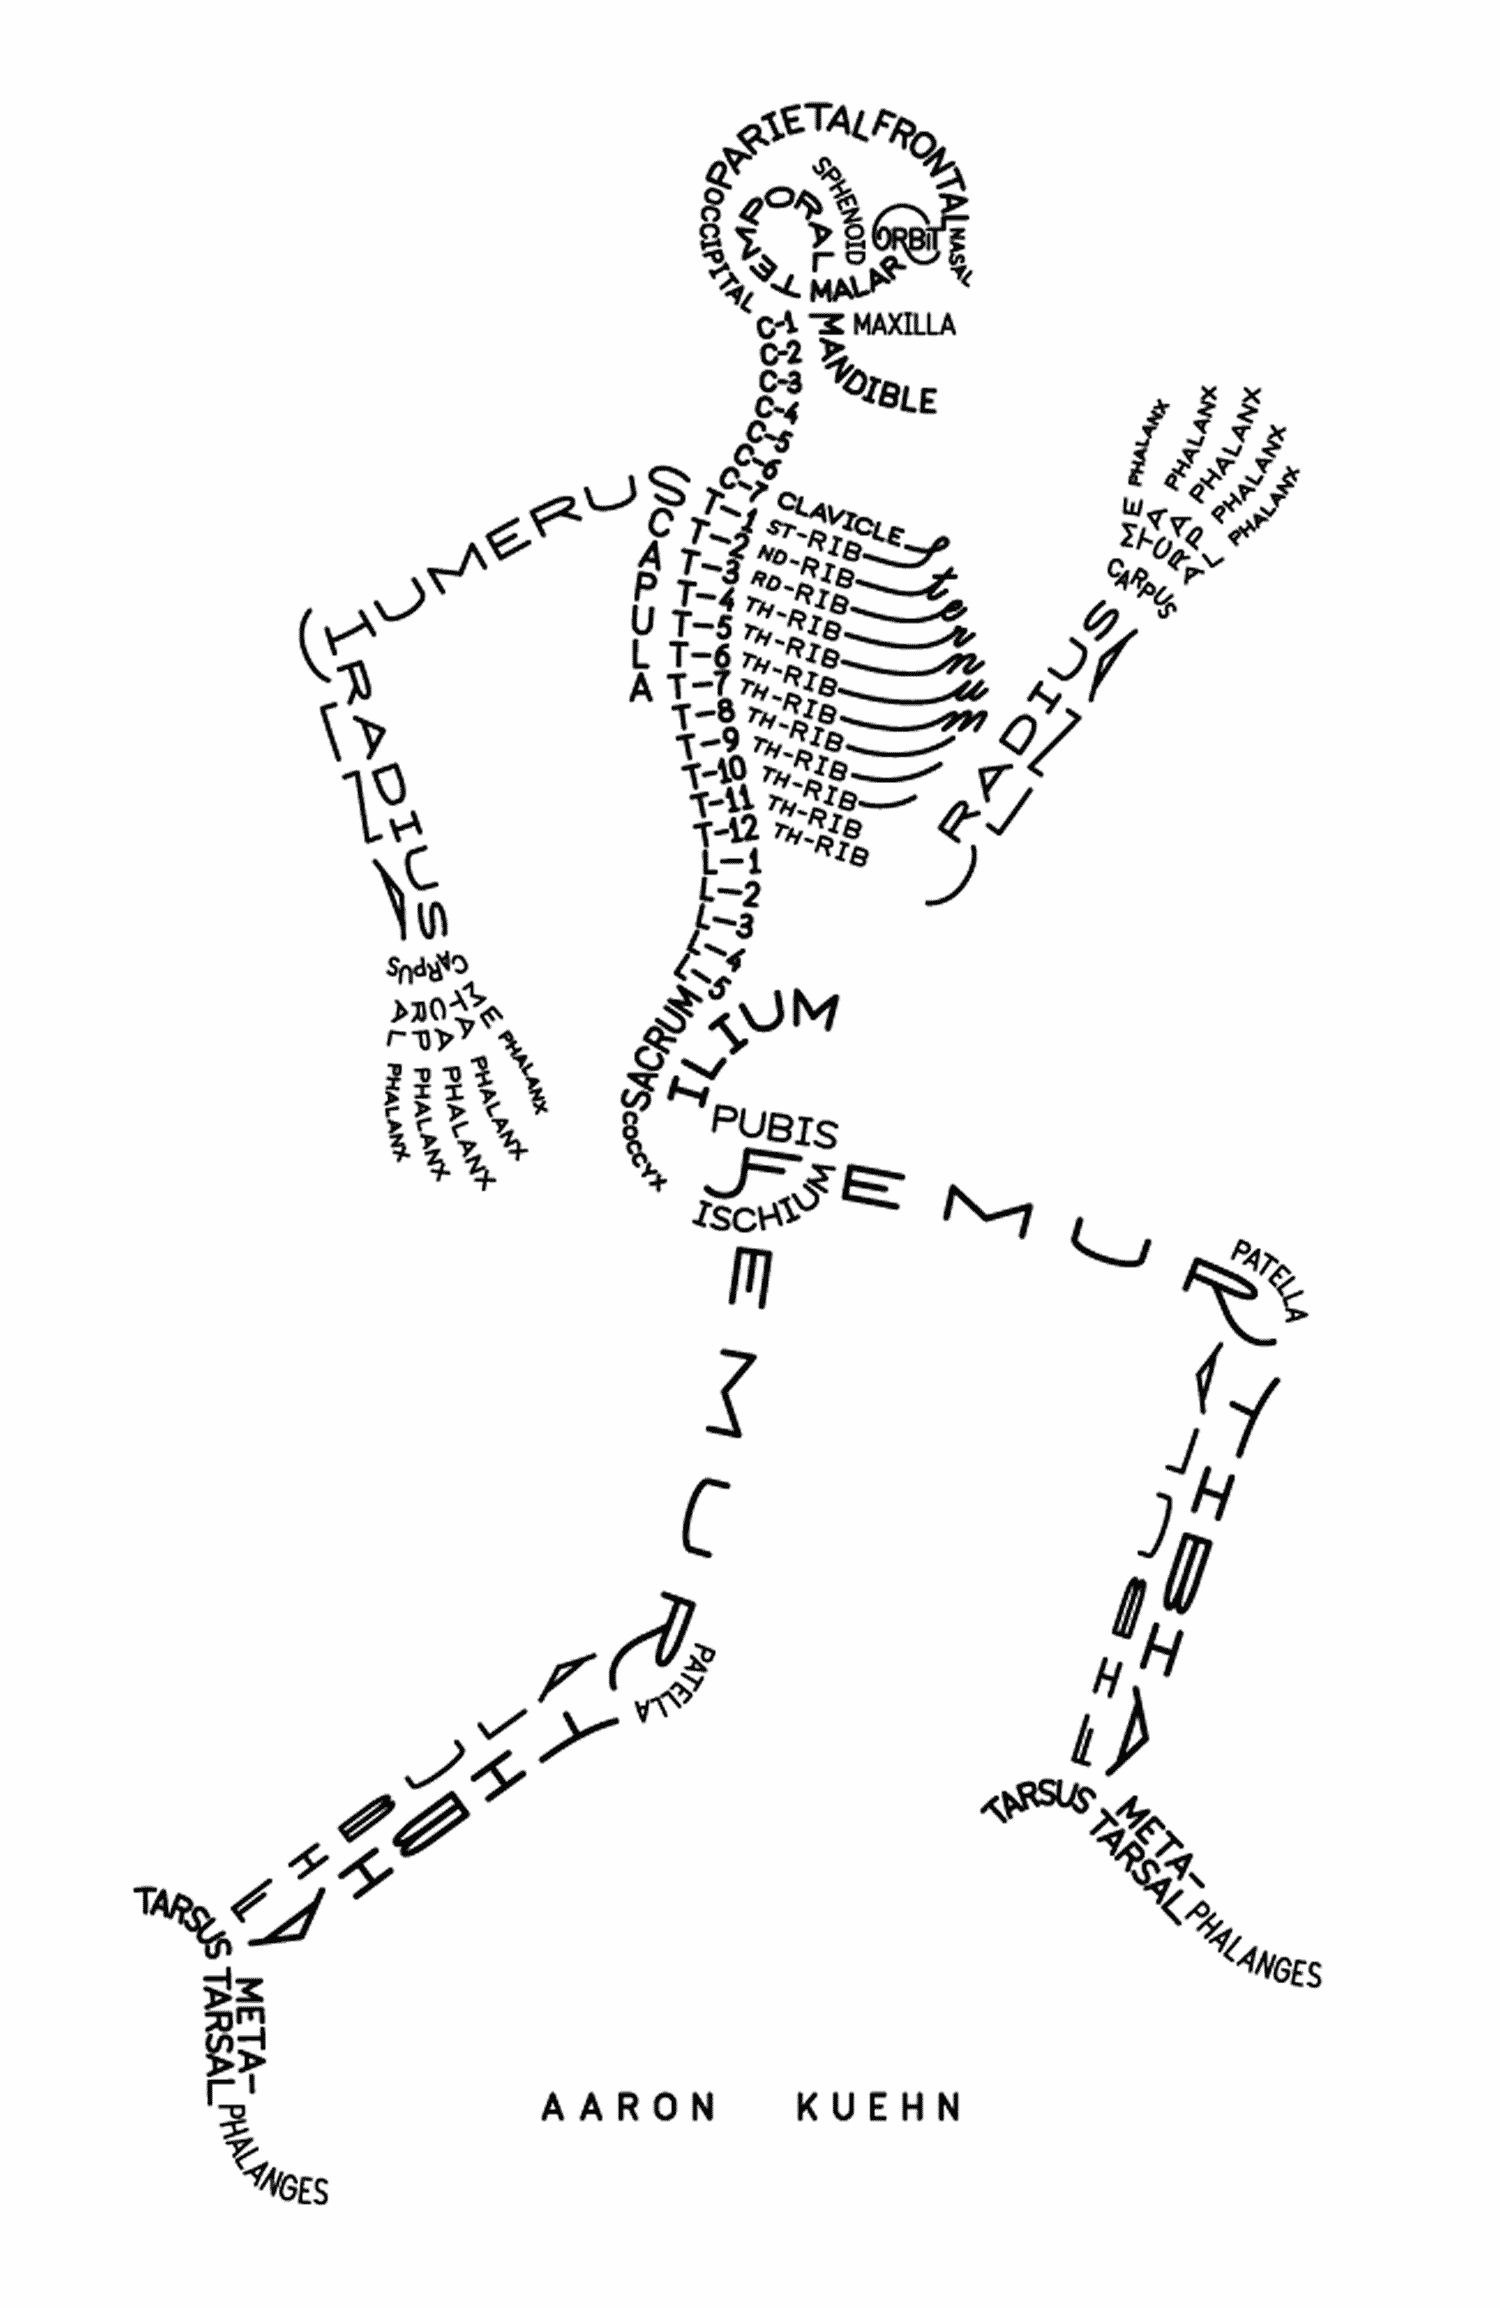 fun skeleton diagram